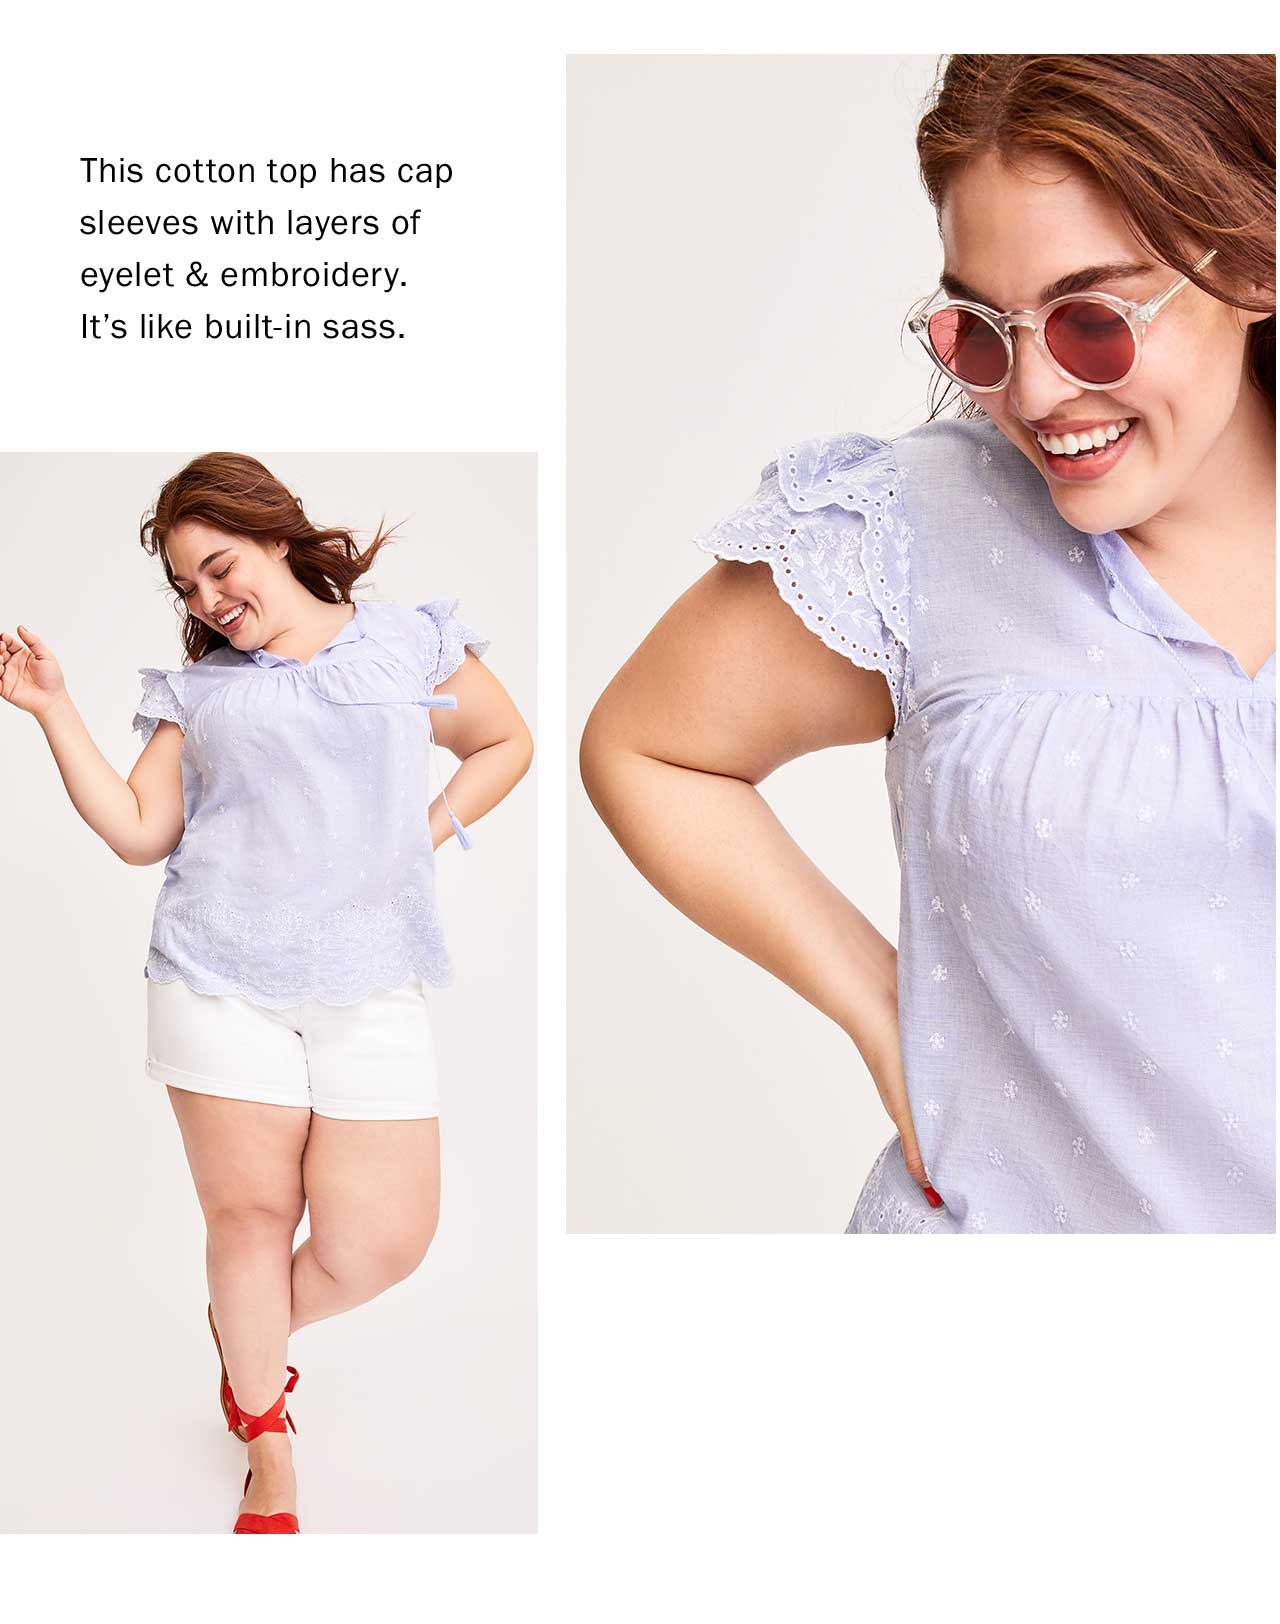 This cotton top has cap sleeves with layers of eyelet & embroidery. It's like built-in sass.